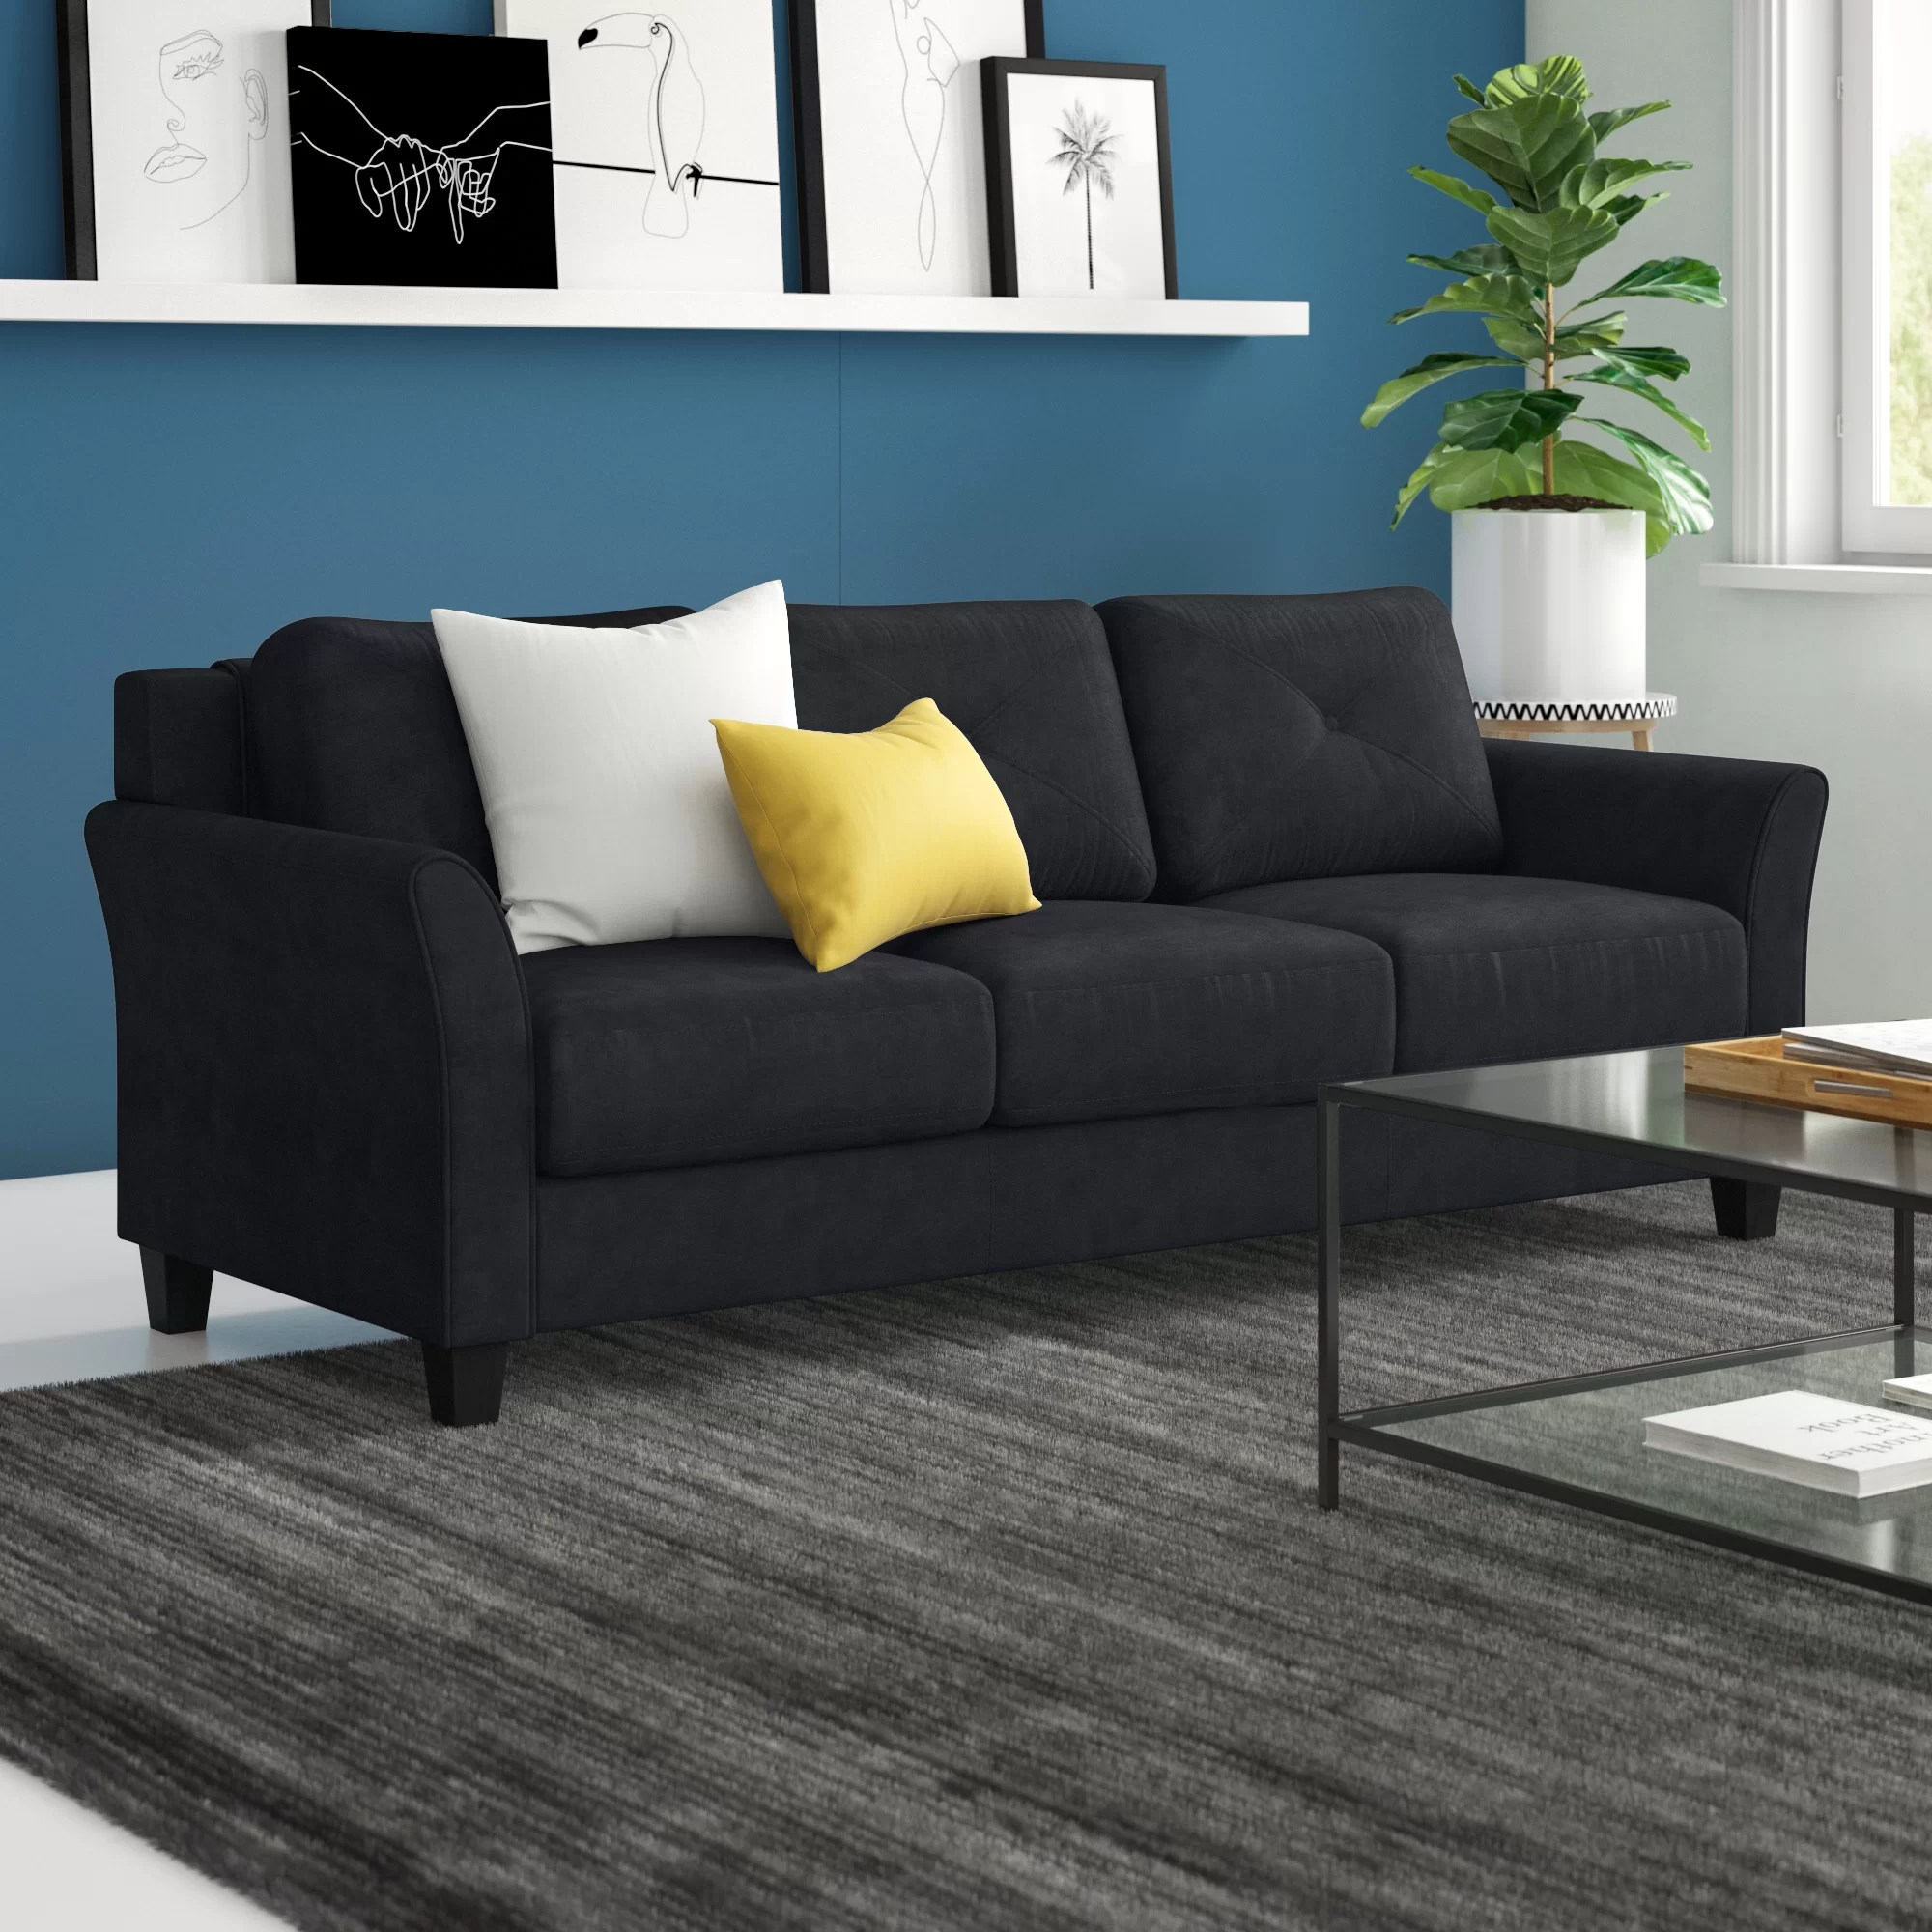 Sofa S Wayfair Zipcode Design Ibiza Sofa